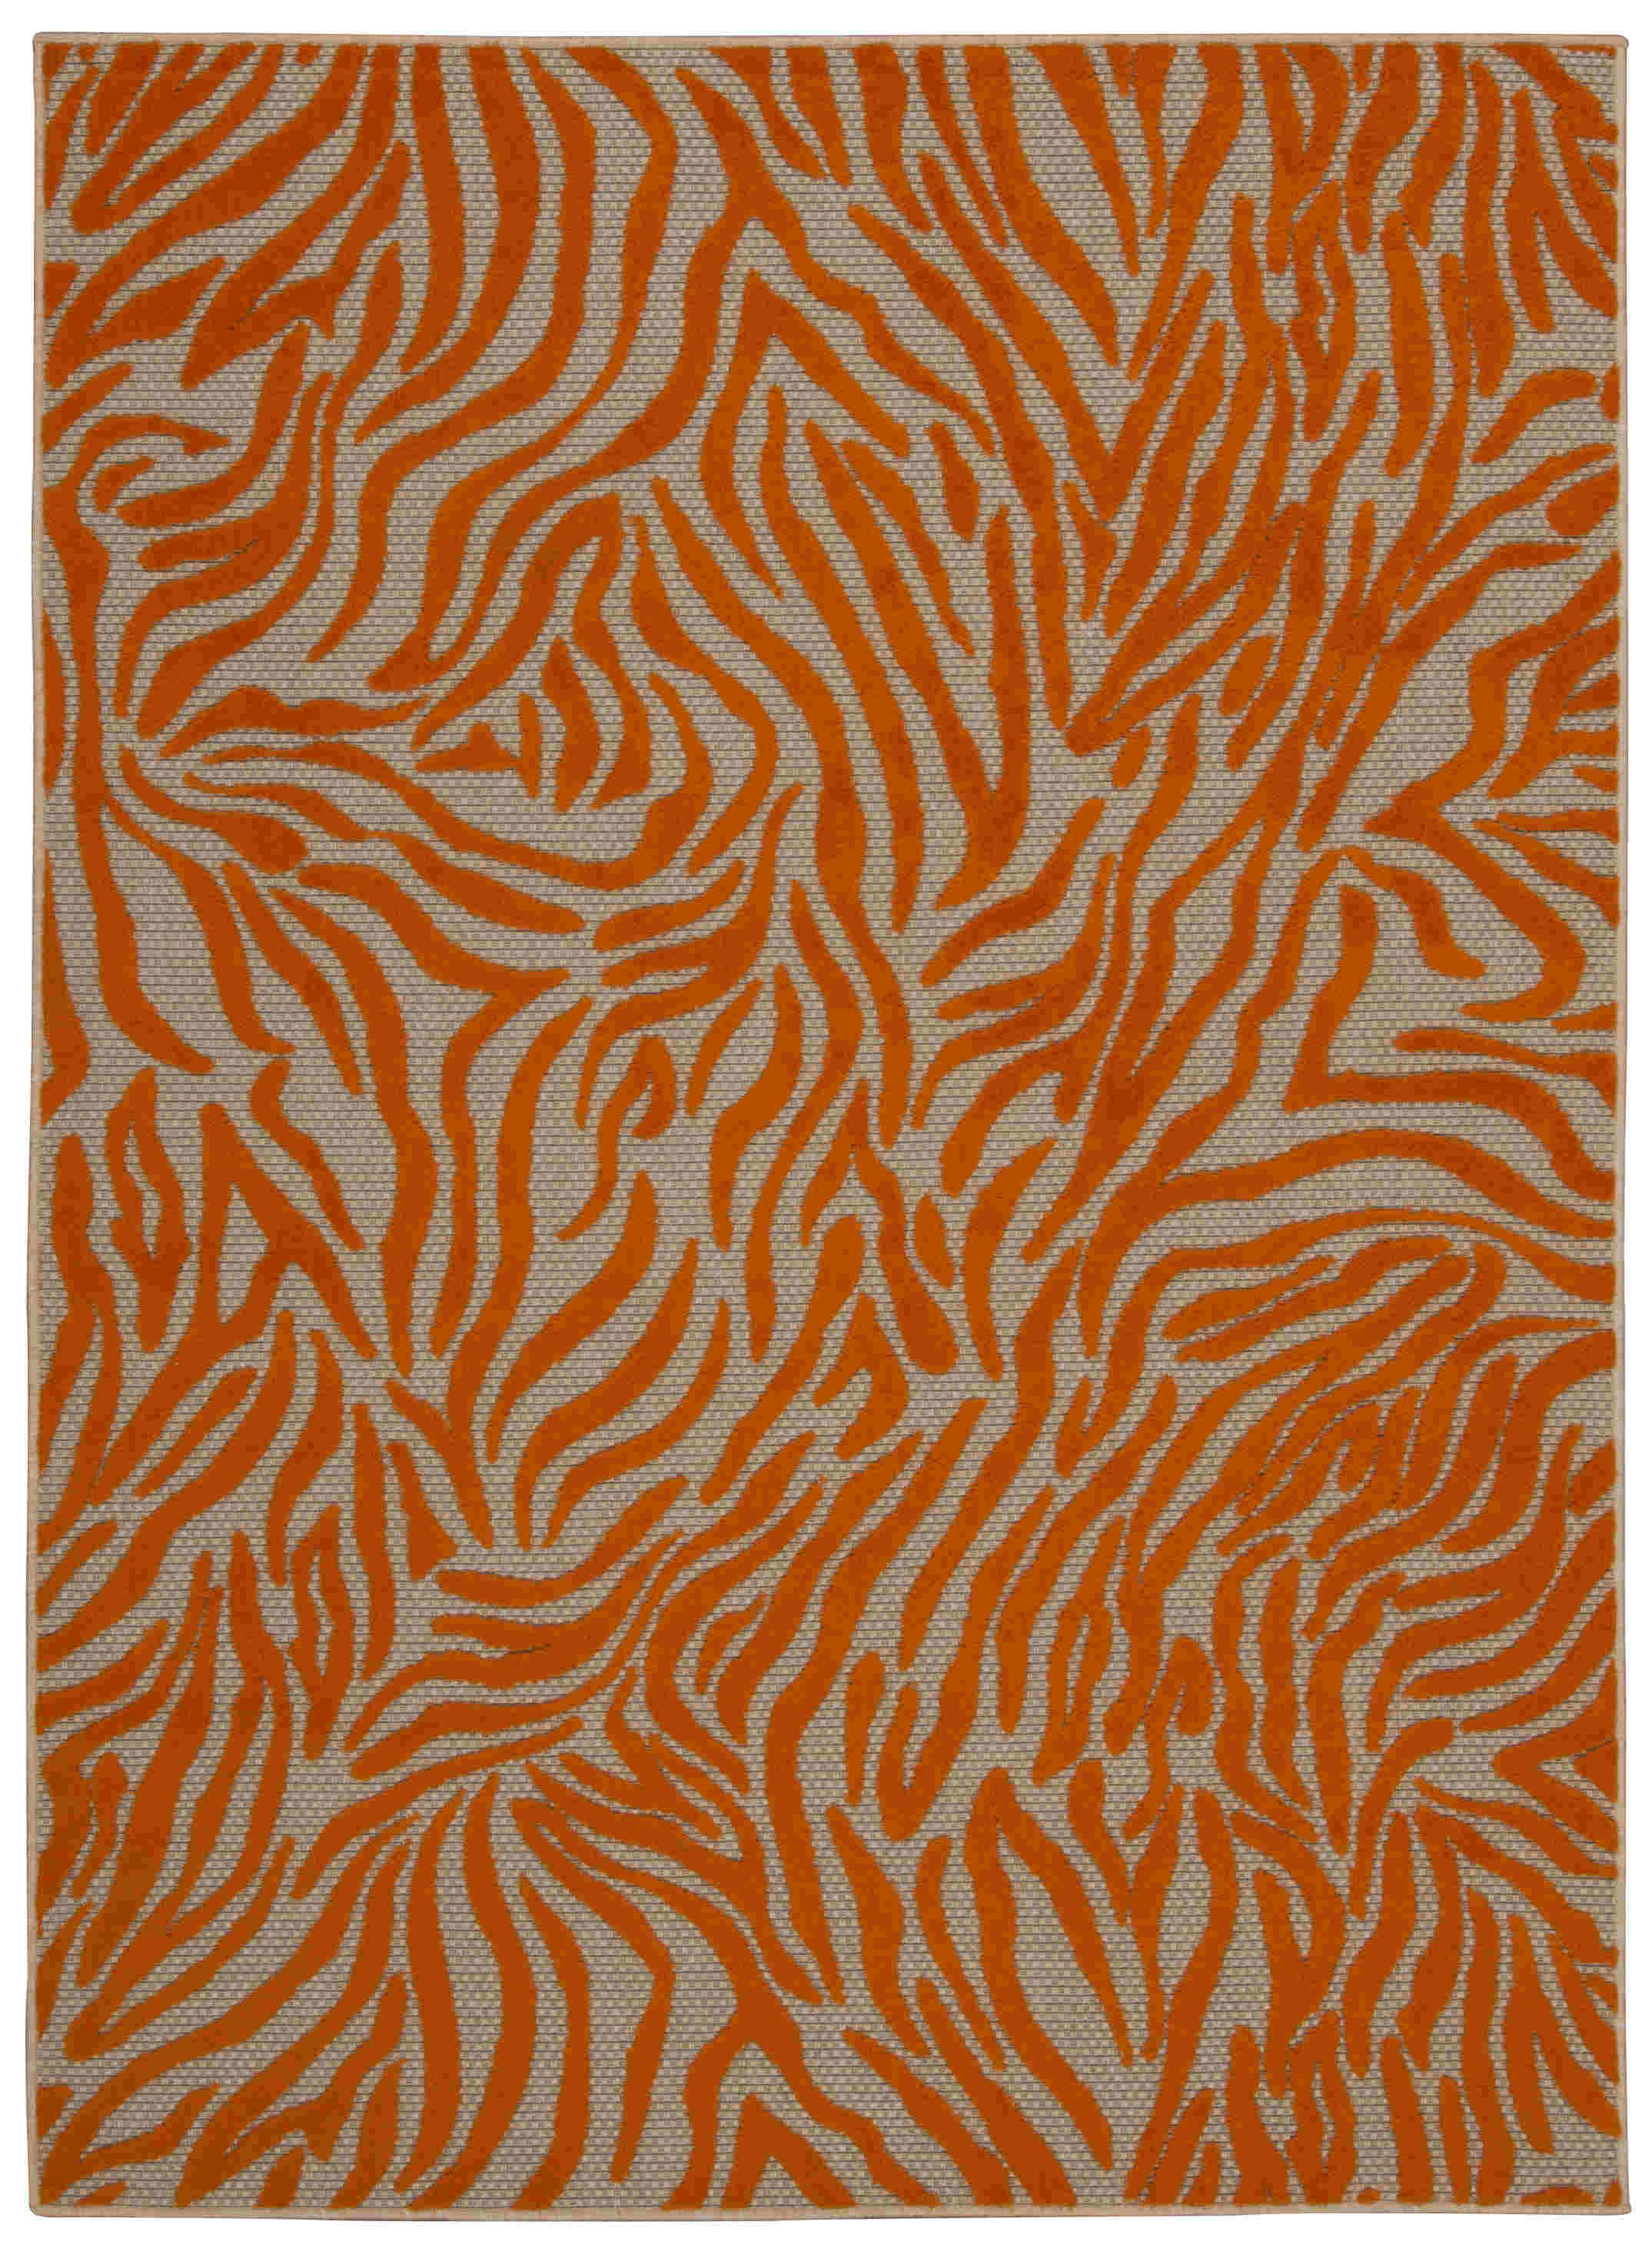 Aloha Machine Woven Orange Area Rugs